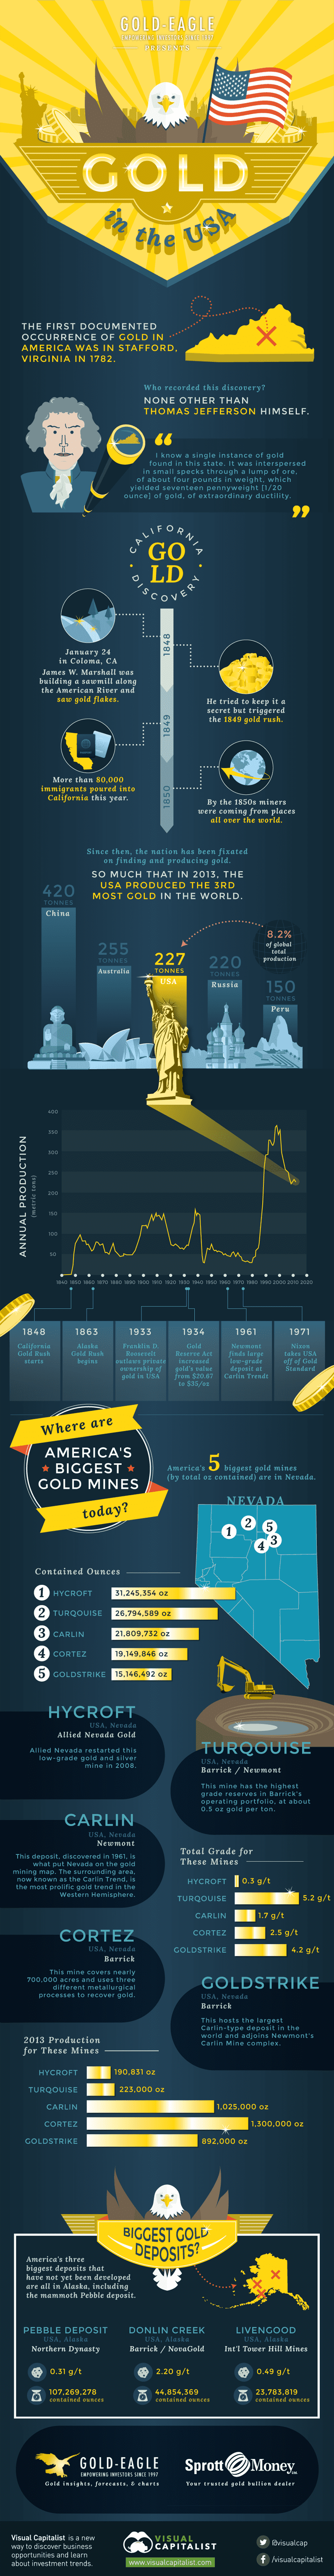 gold-in-usa-infographic